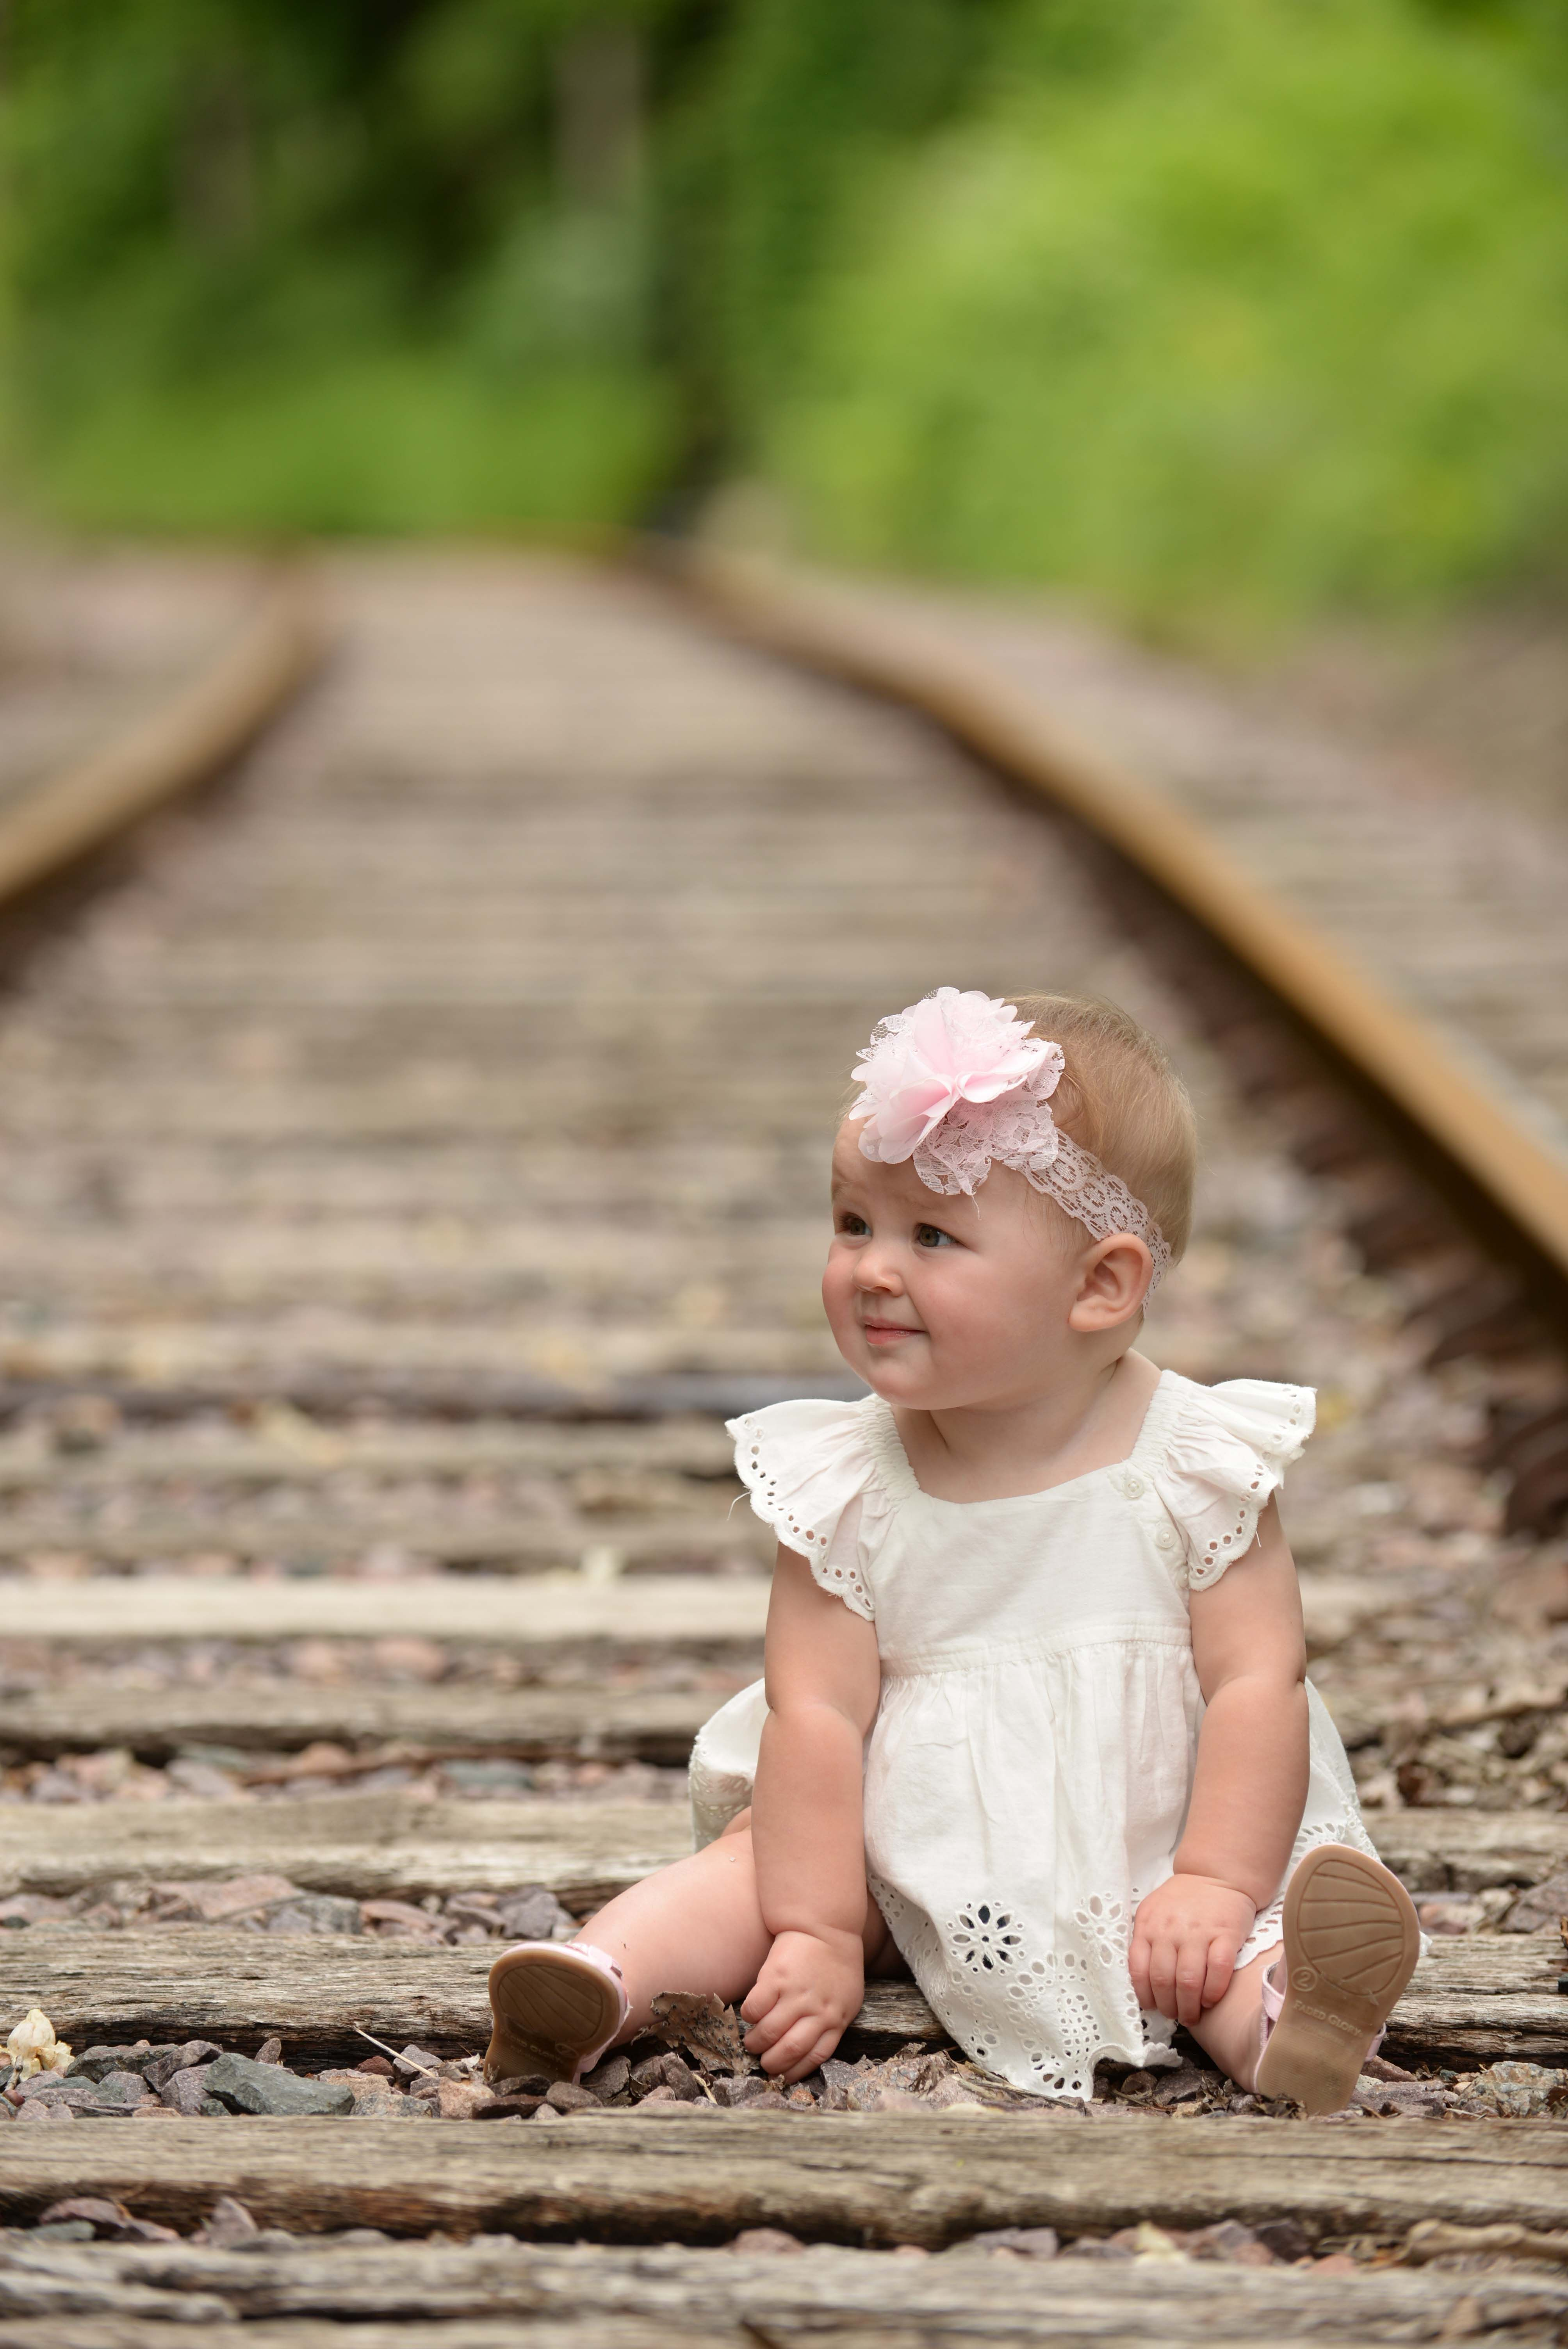 Outdoor Baby photo baby girl on railroad tracks candid child